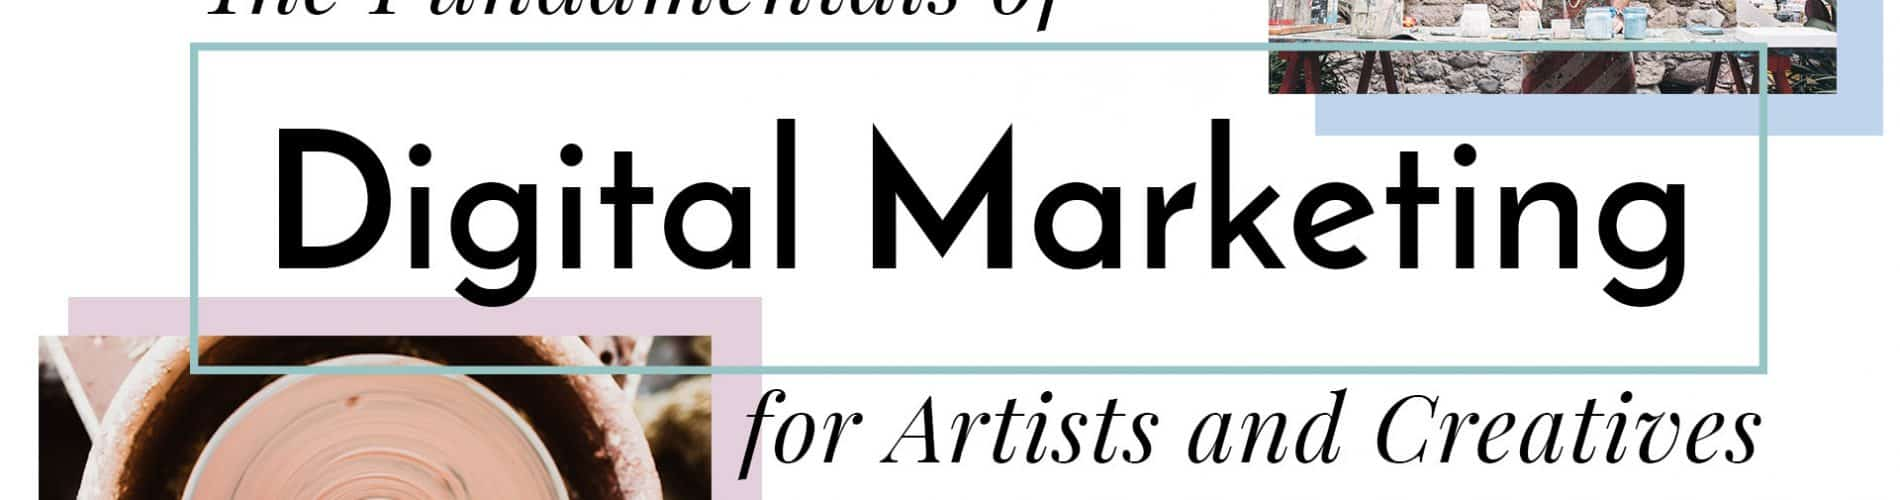 Fundamentals of Digital Marketing for Artists and Creatives